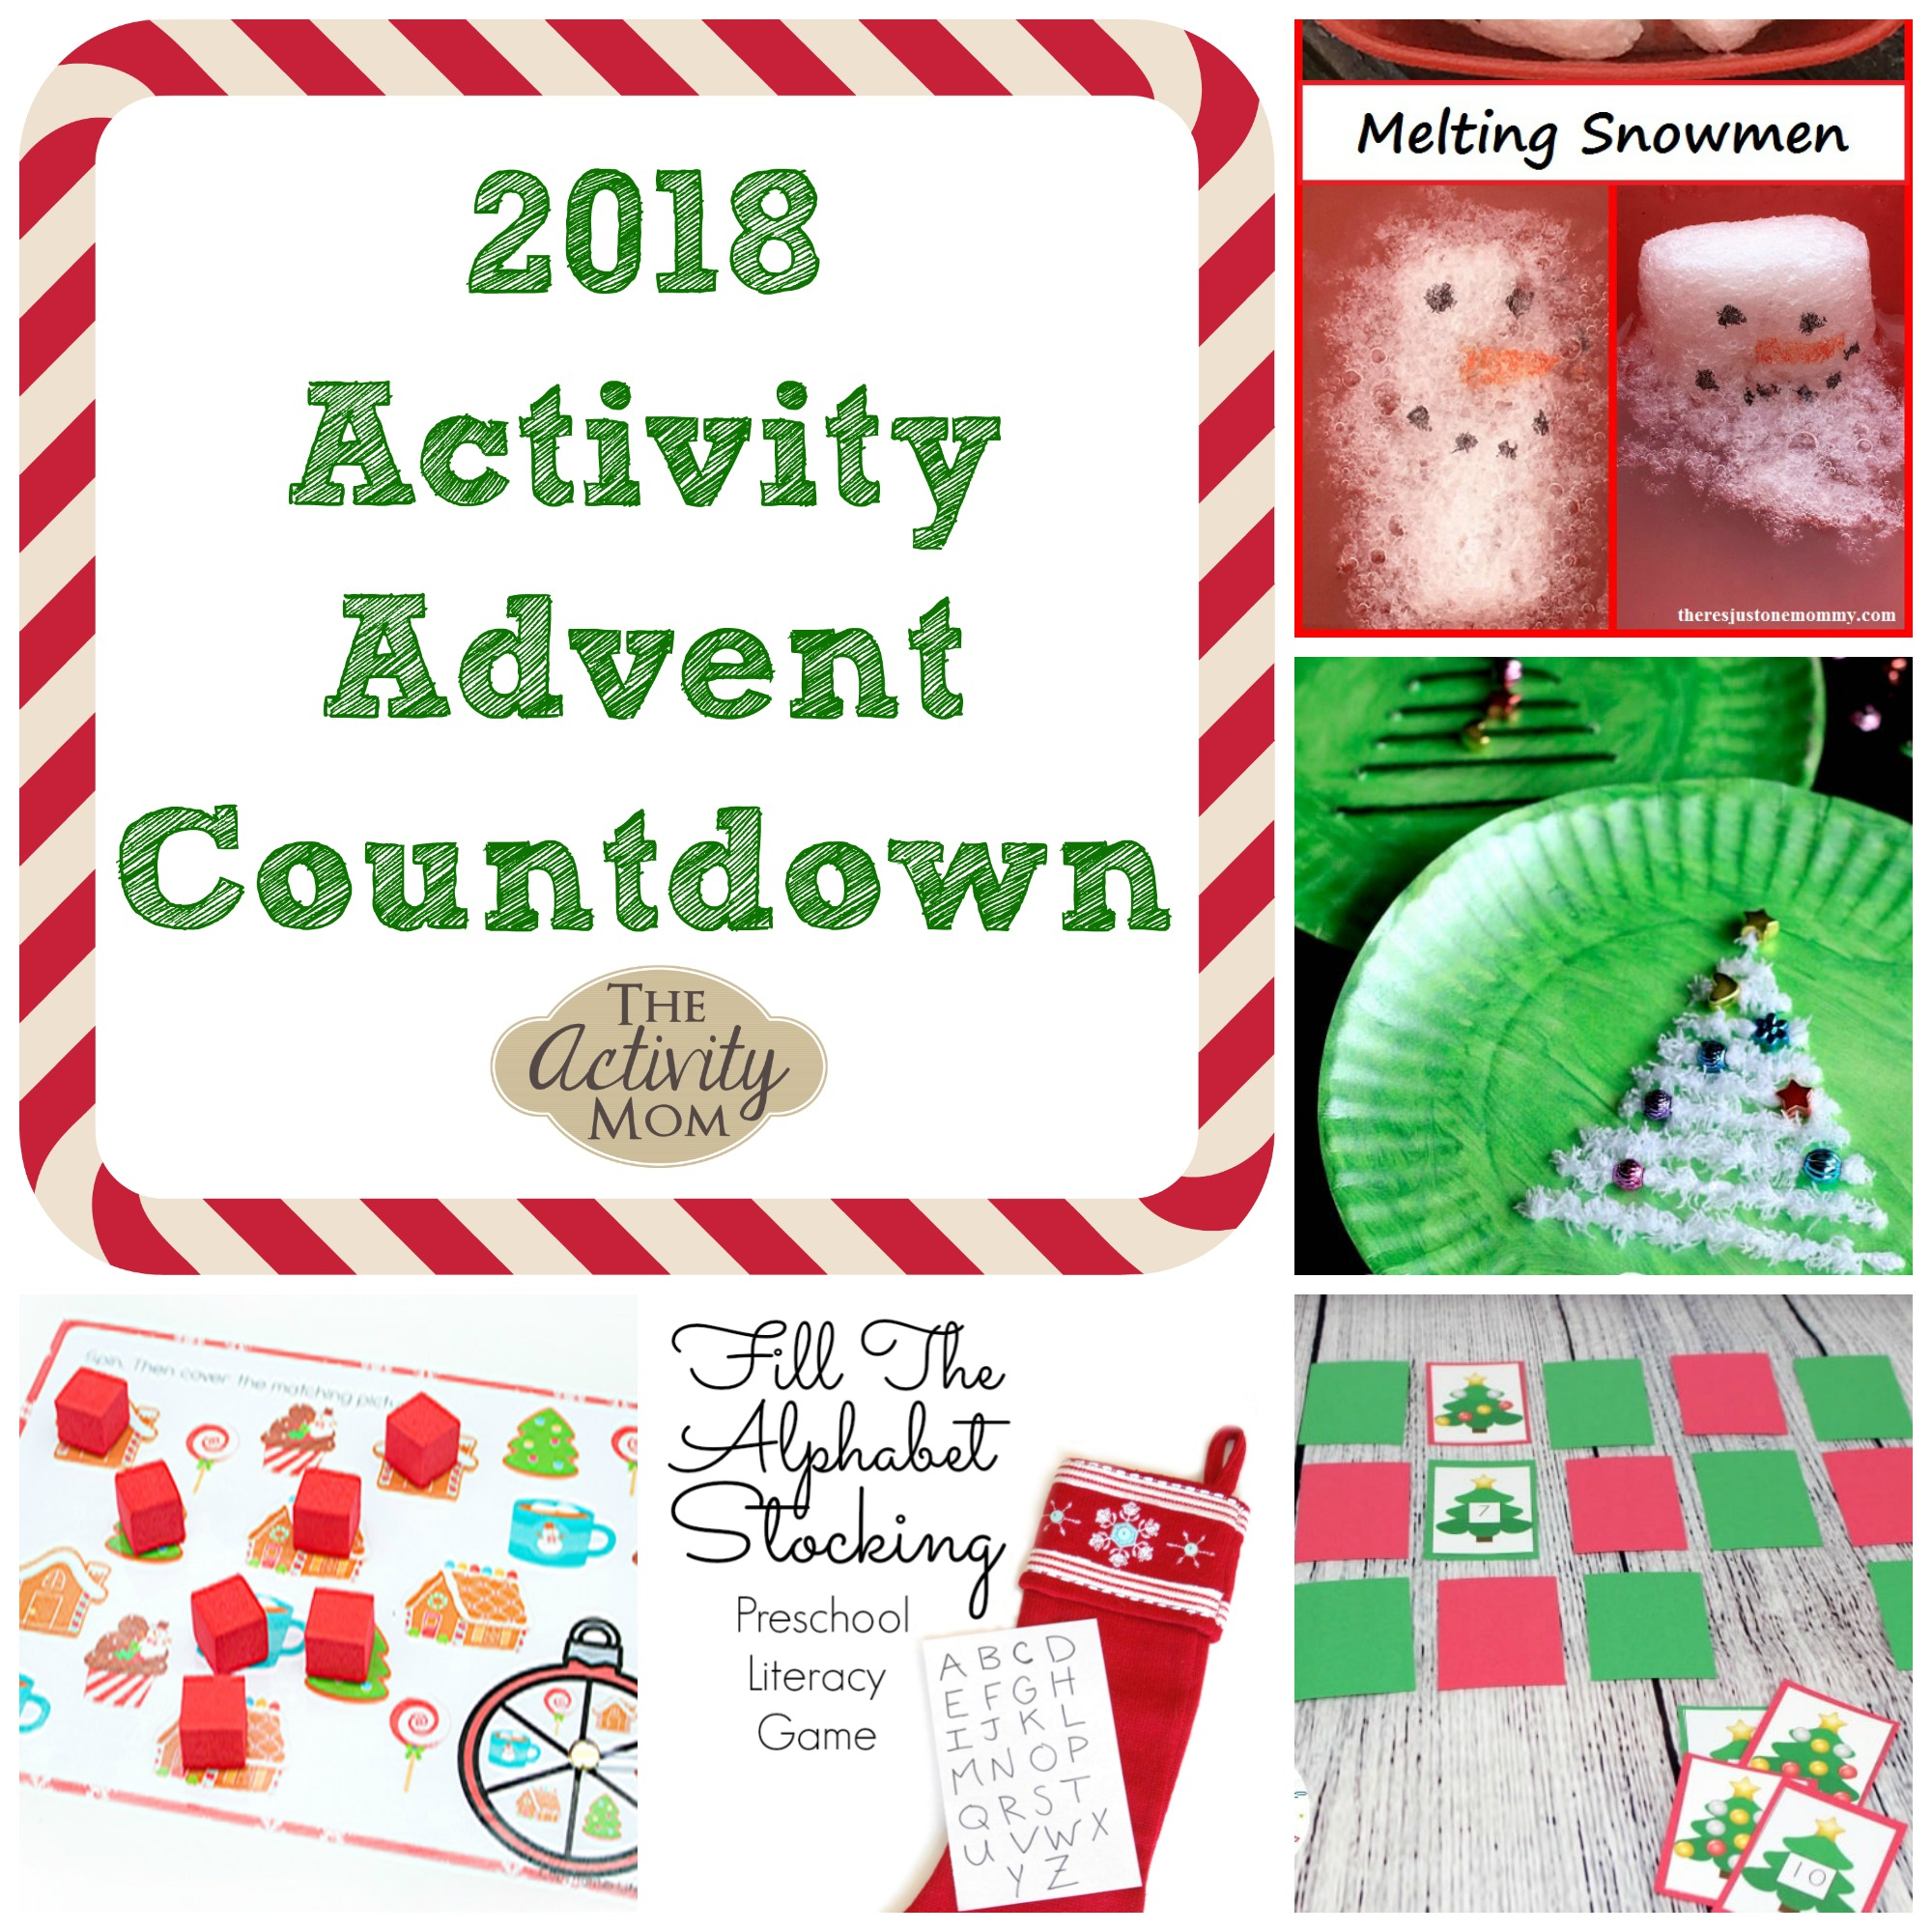 2018 Activity Advent Countdown for Preschoolers and Toddlers